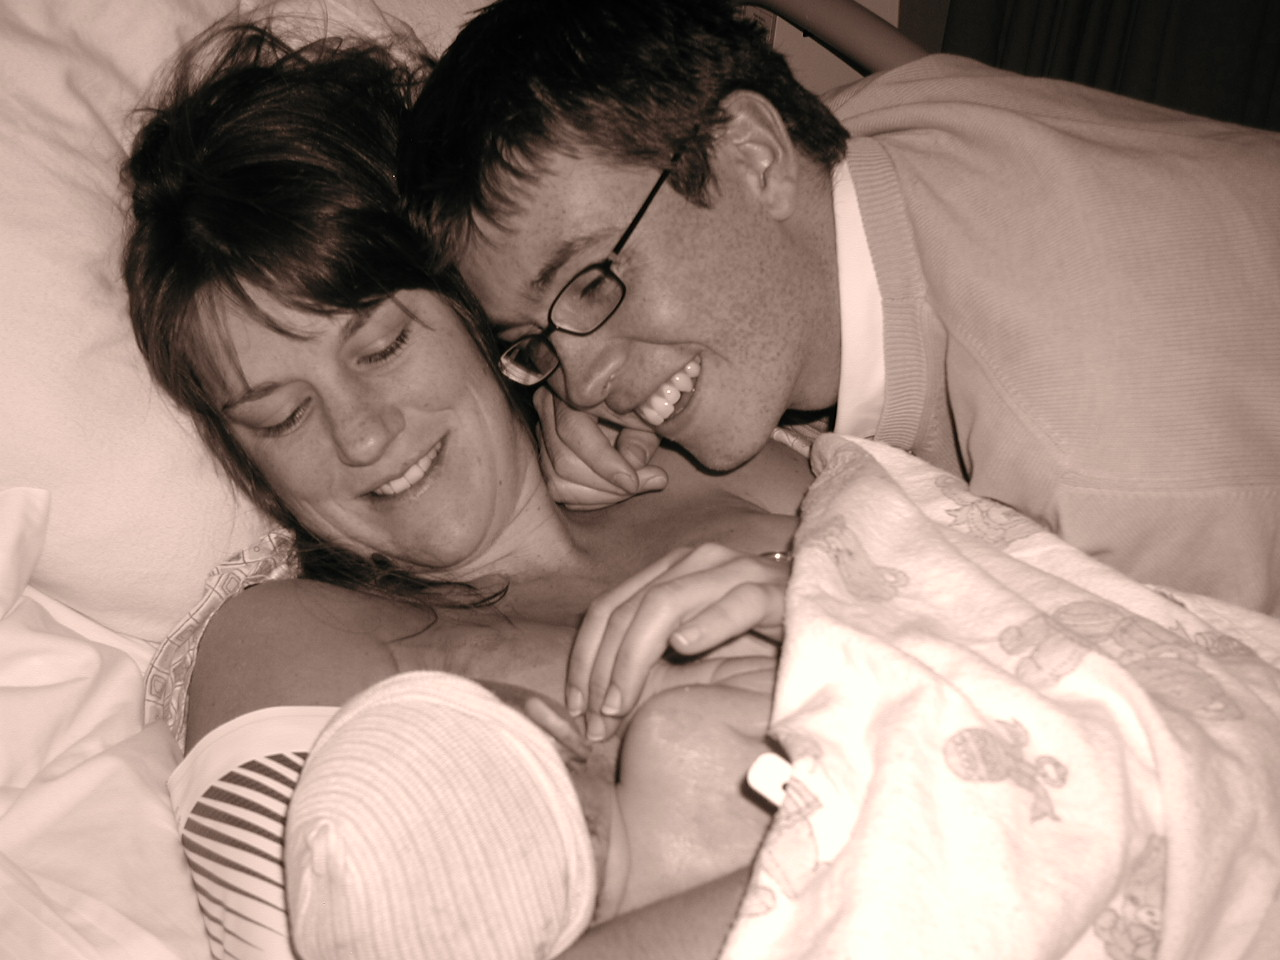 Lots of love, support and trust creates a remarkable birth experience.